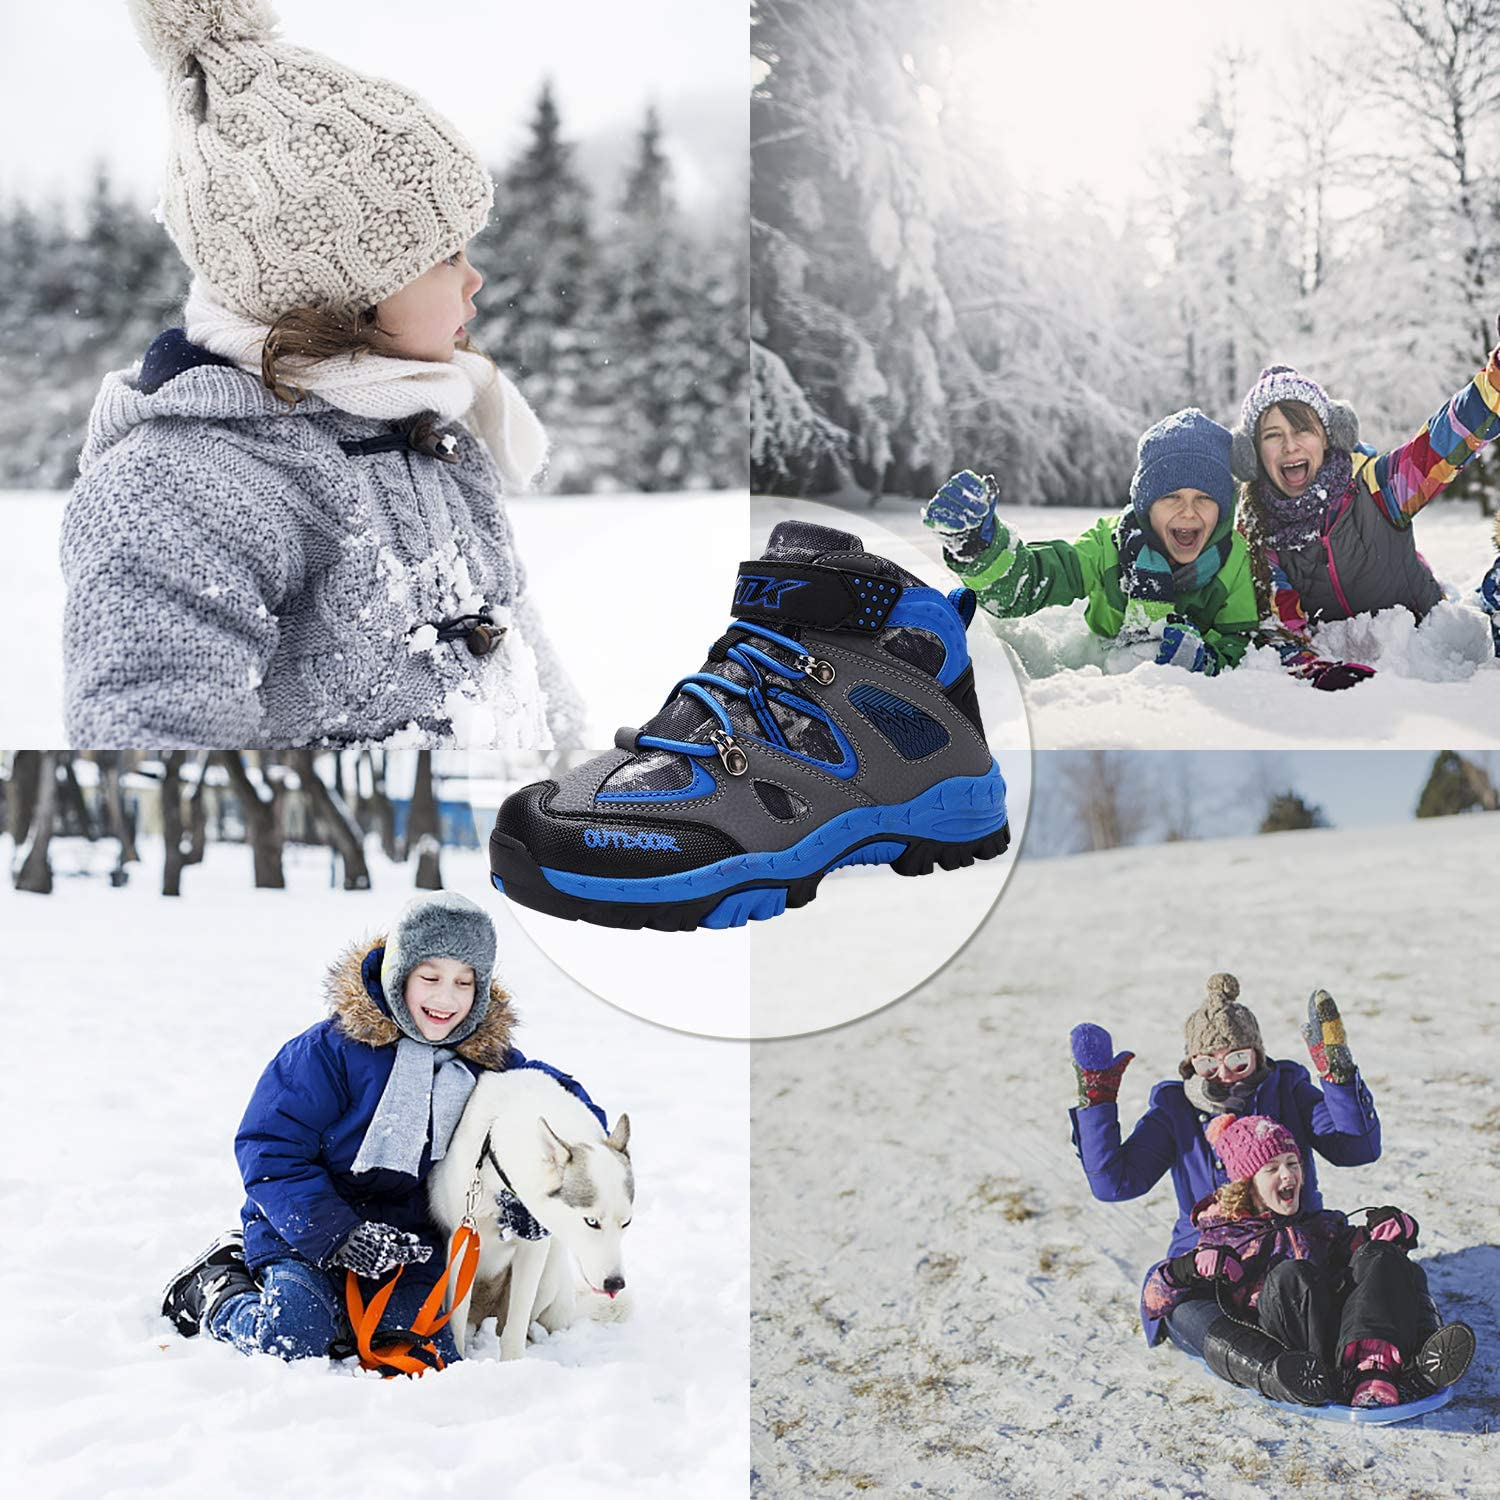 Kids Boots Hiking Boots Warm Anti-Slip Snow Boots Winter Camping Sneakers for Boys Girls